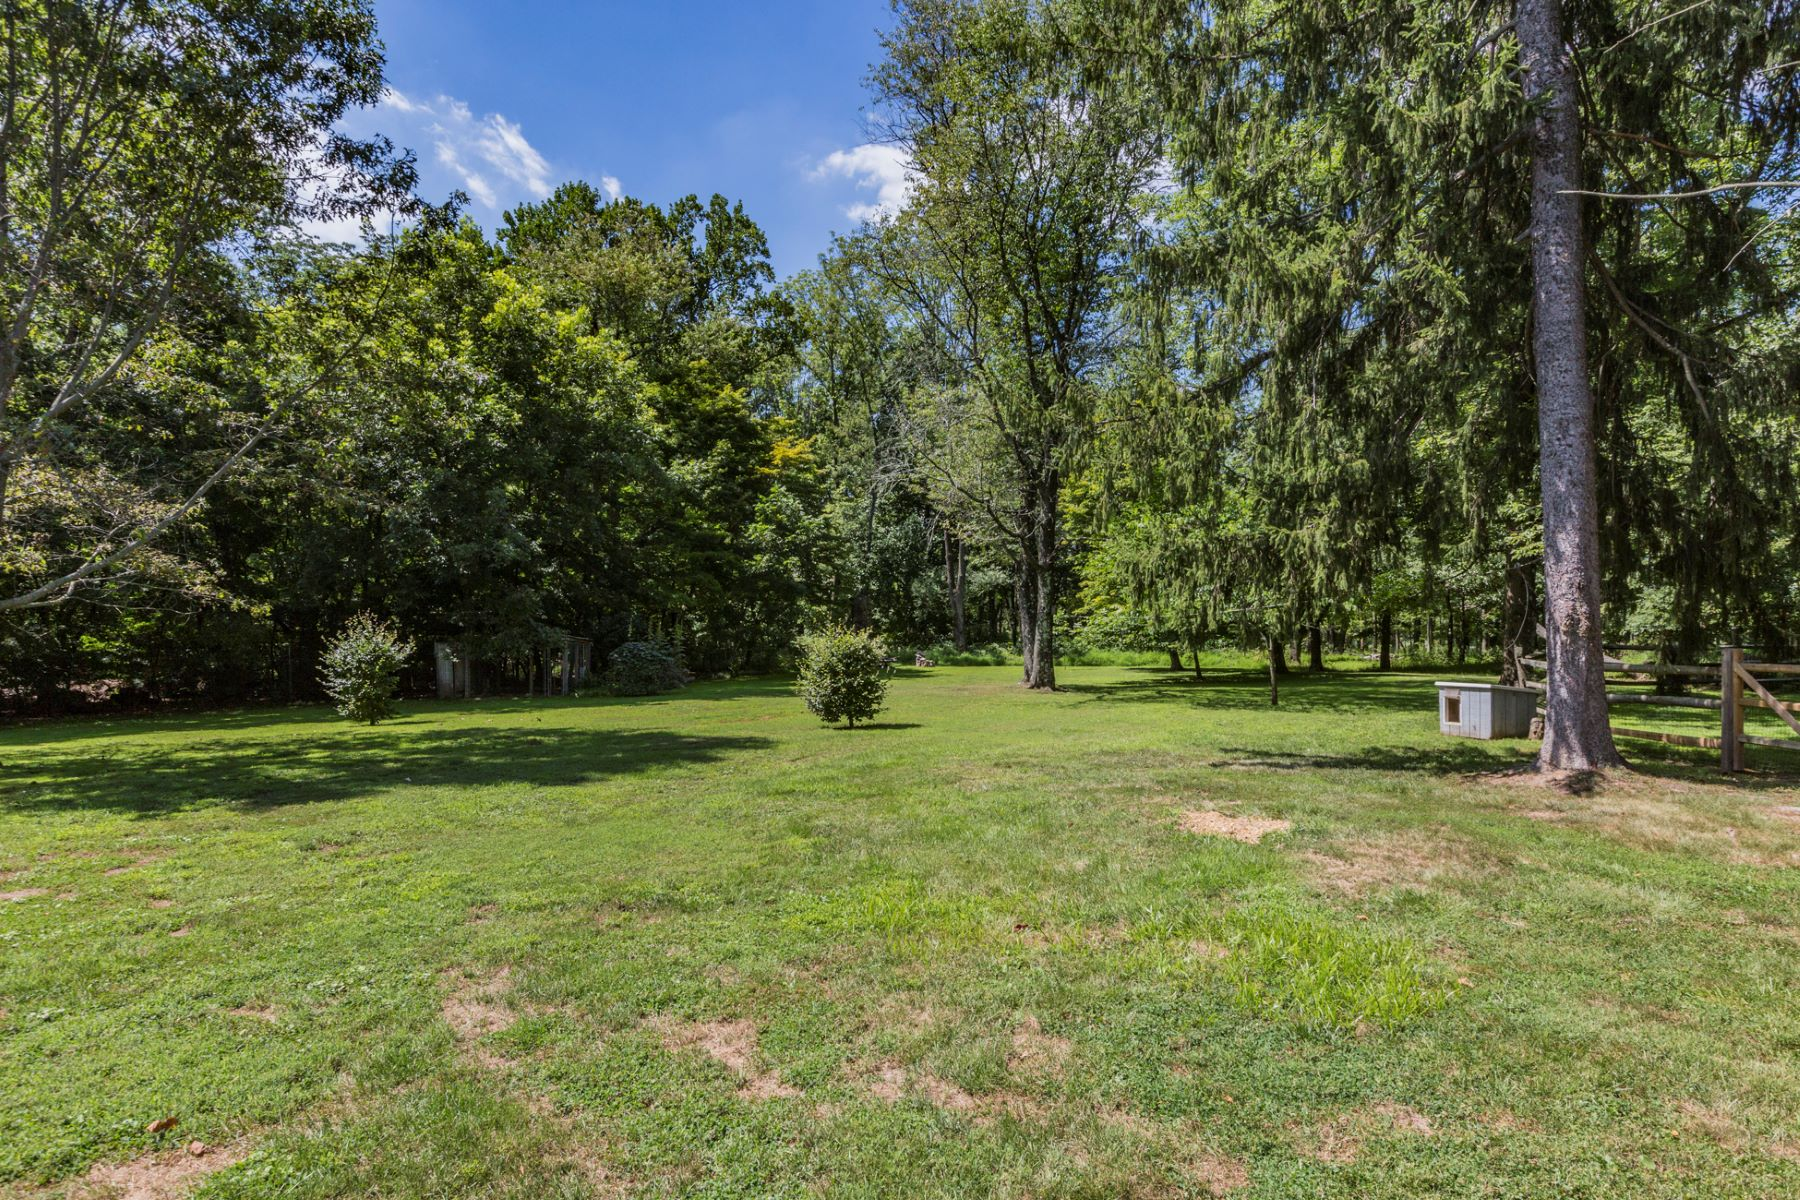 Additional photo for property listing at A Home For The History Buff - Hopewell Township 273 Pennington Rocky Hill Road Pennington, Нью-Джерси 08534 Соединенные Штаты